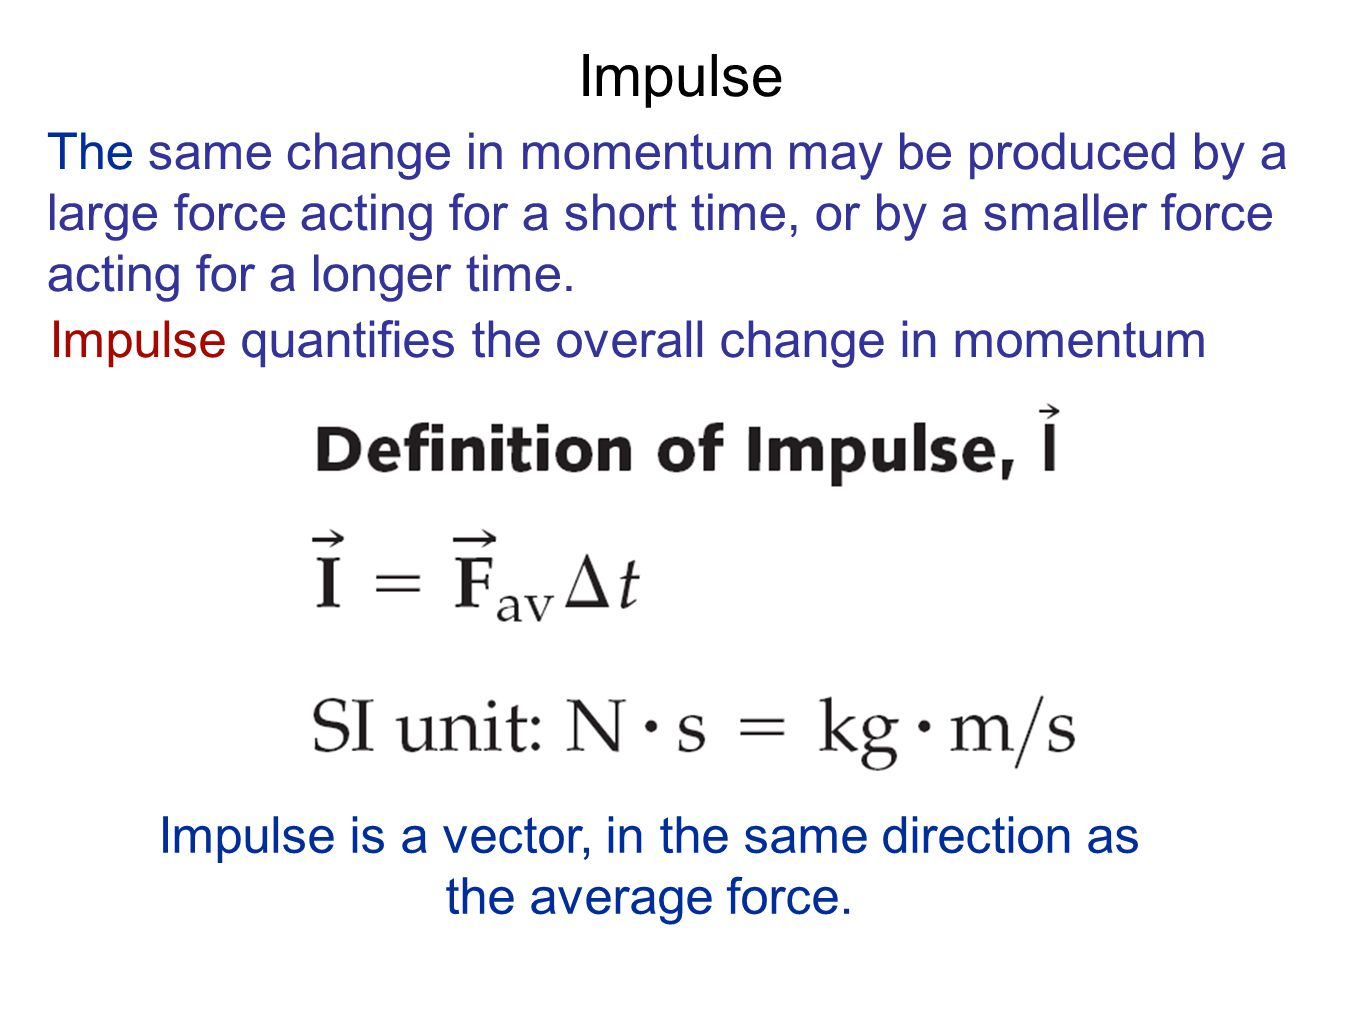 Impulse is a vector, in the same direction as the average force.